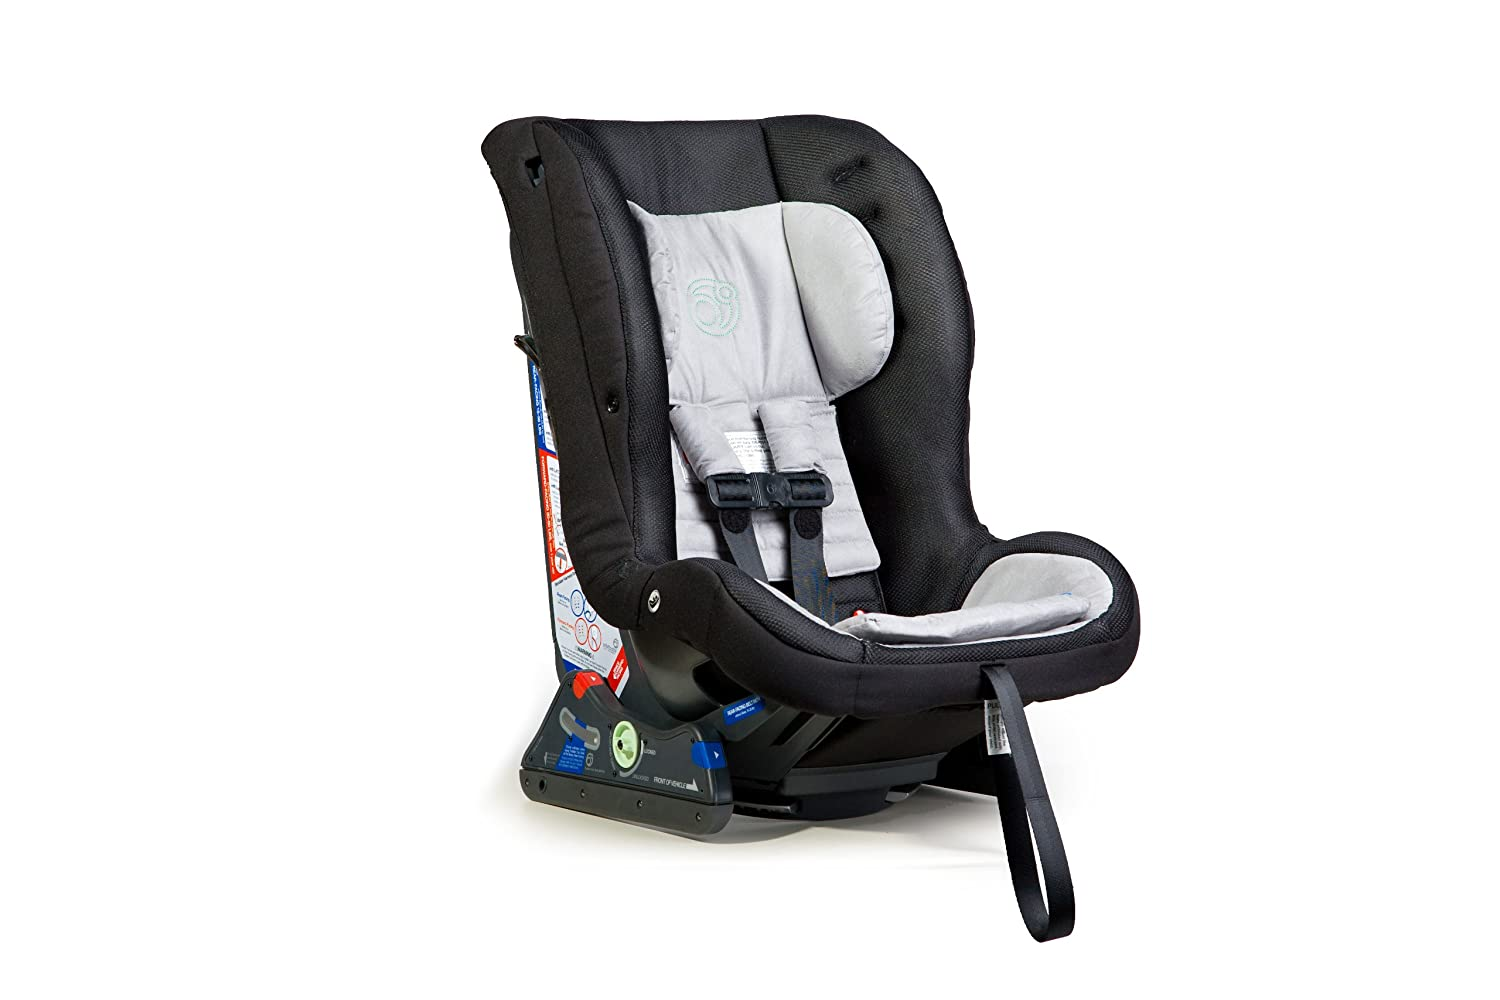 Amazon.com : Orbit Baby Toddler Car Seat, Black (Discontinued by ...